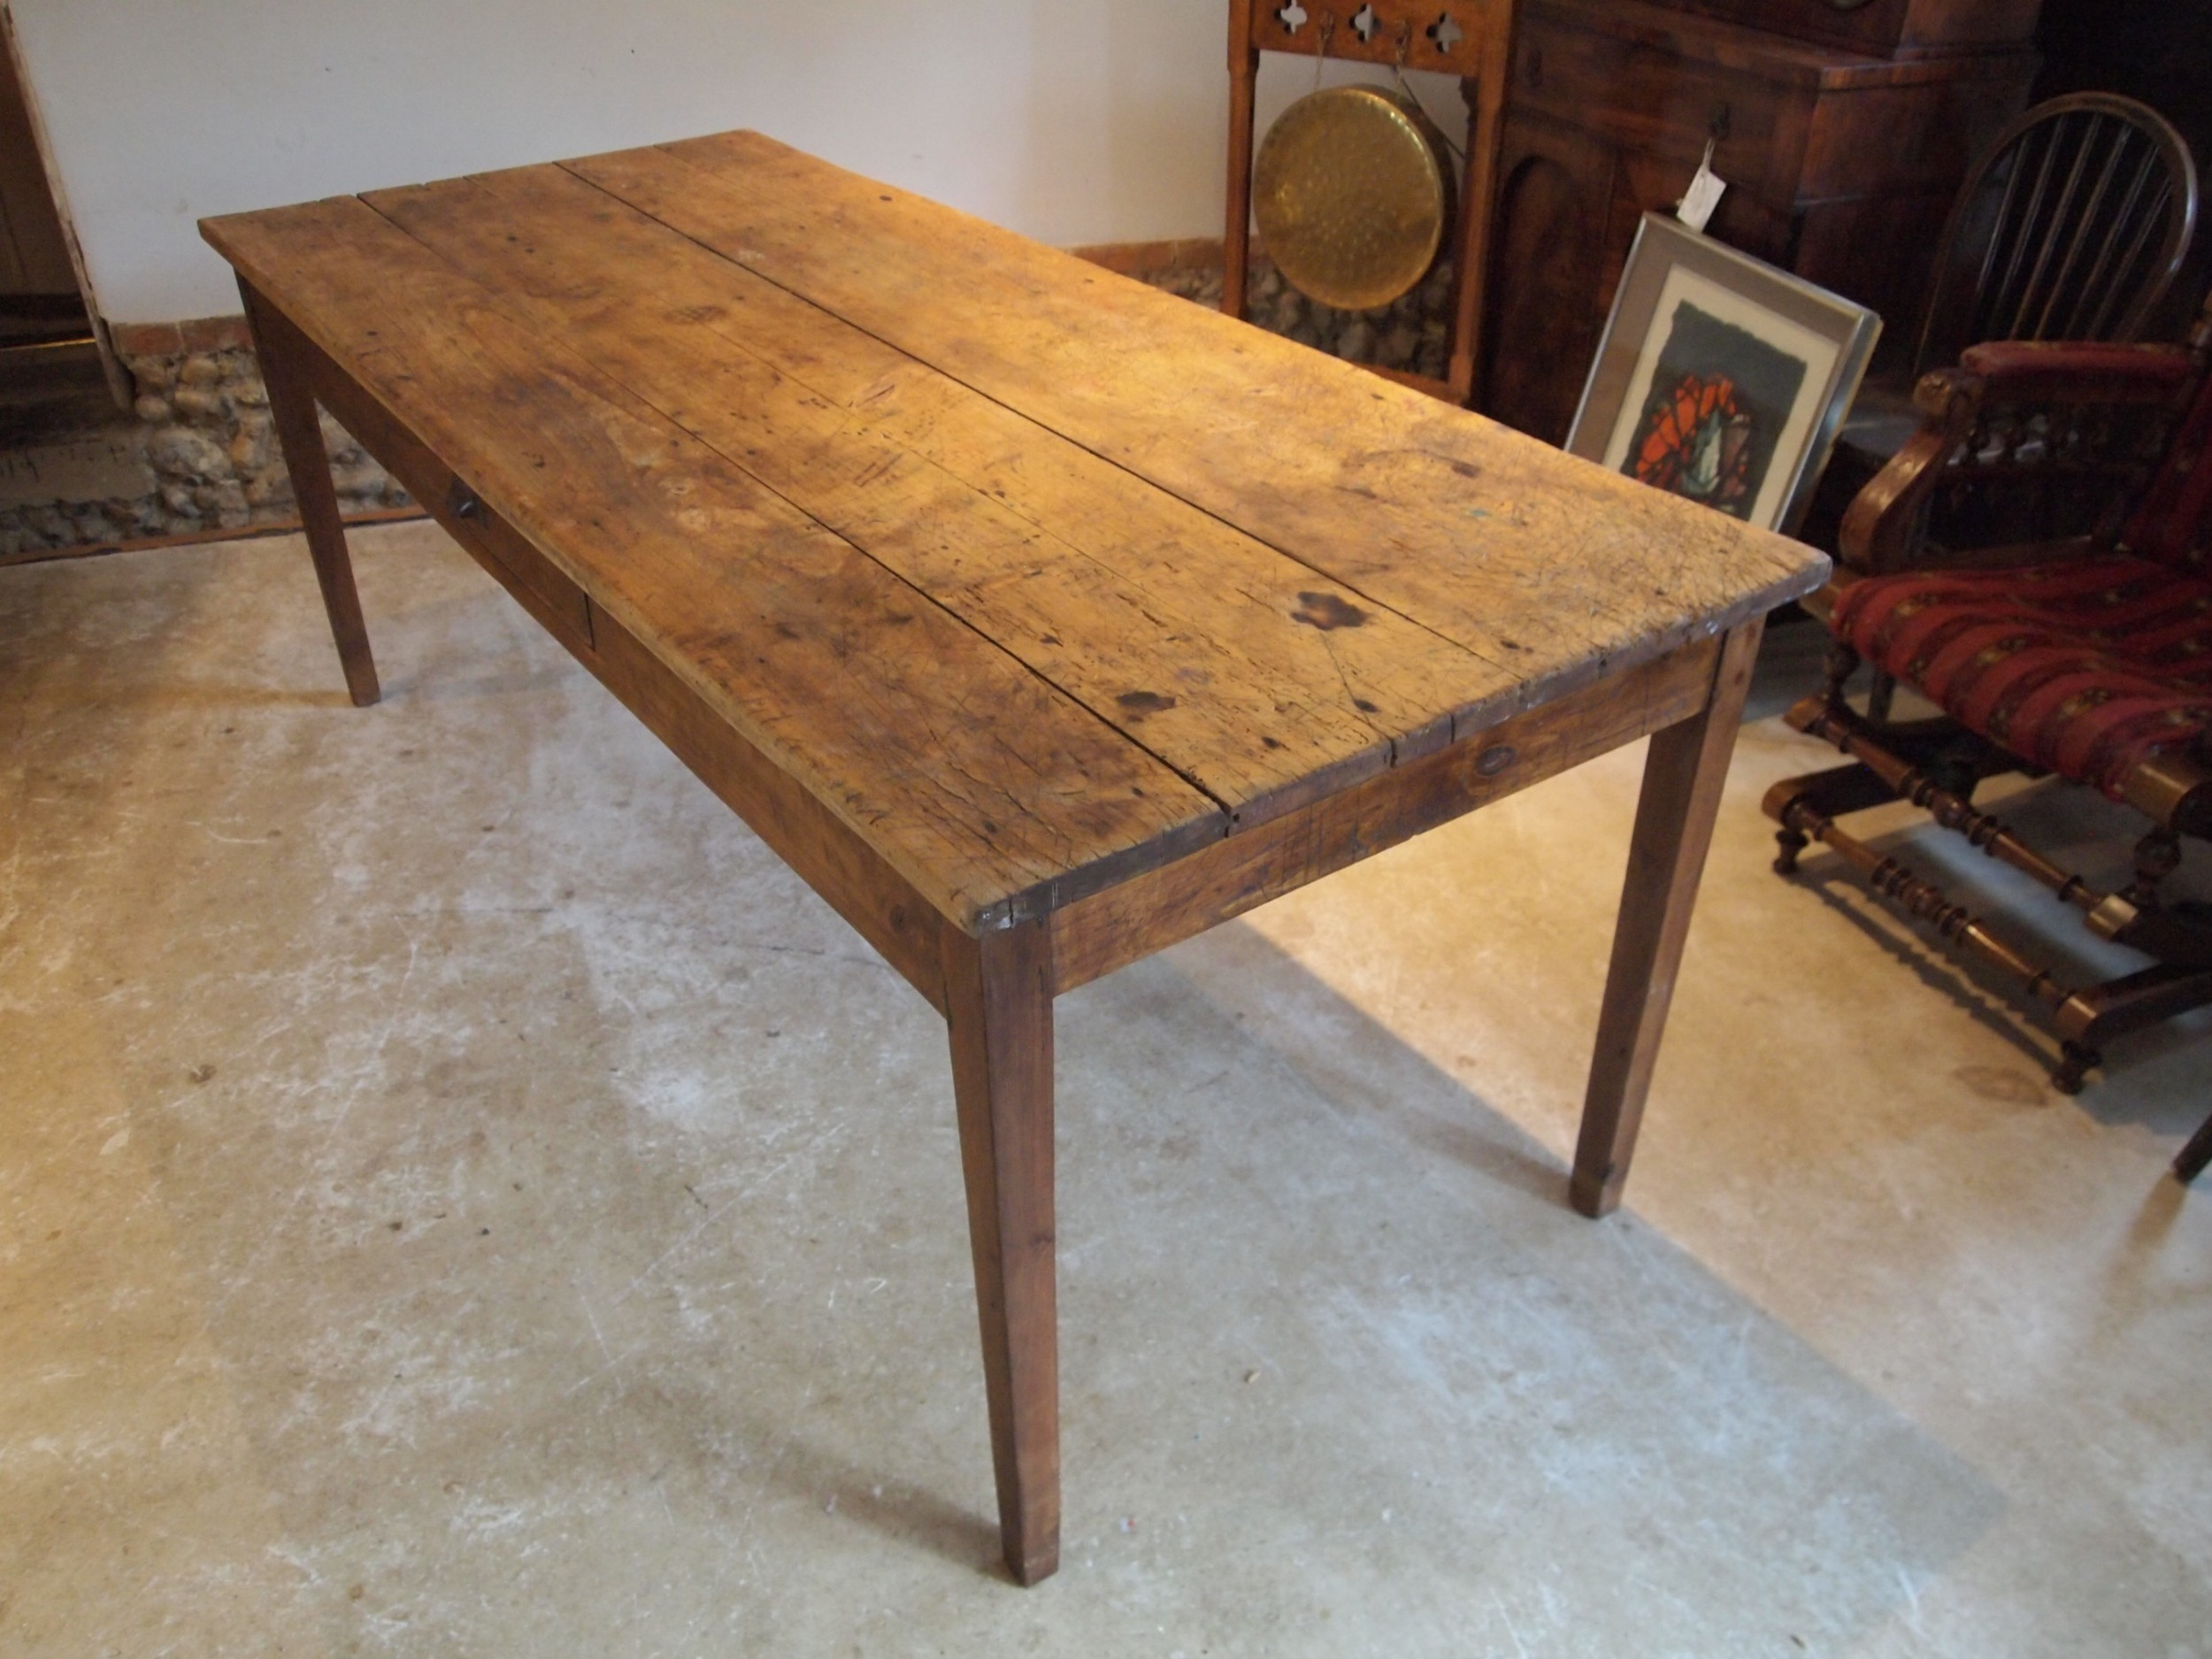 table victorian refectory farmhouse rustic seats 8 c1860